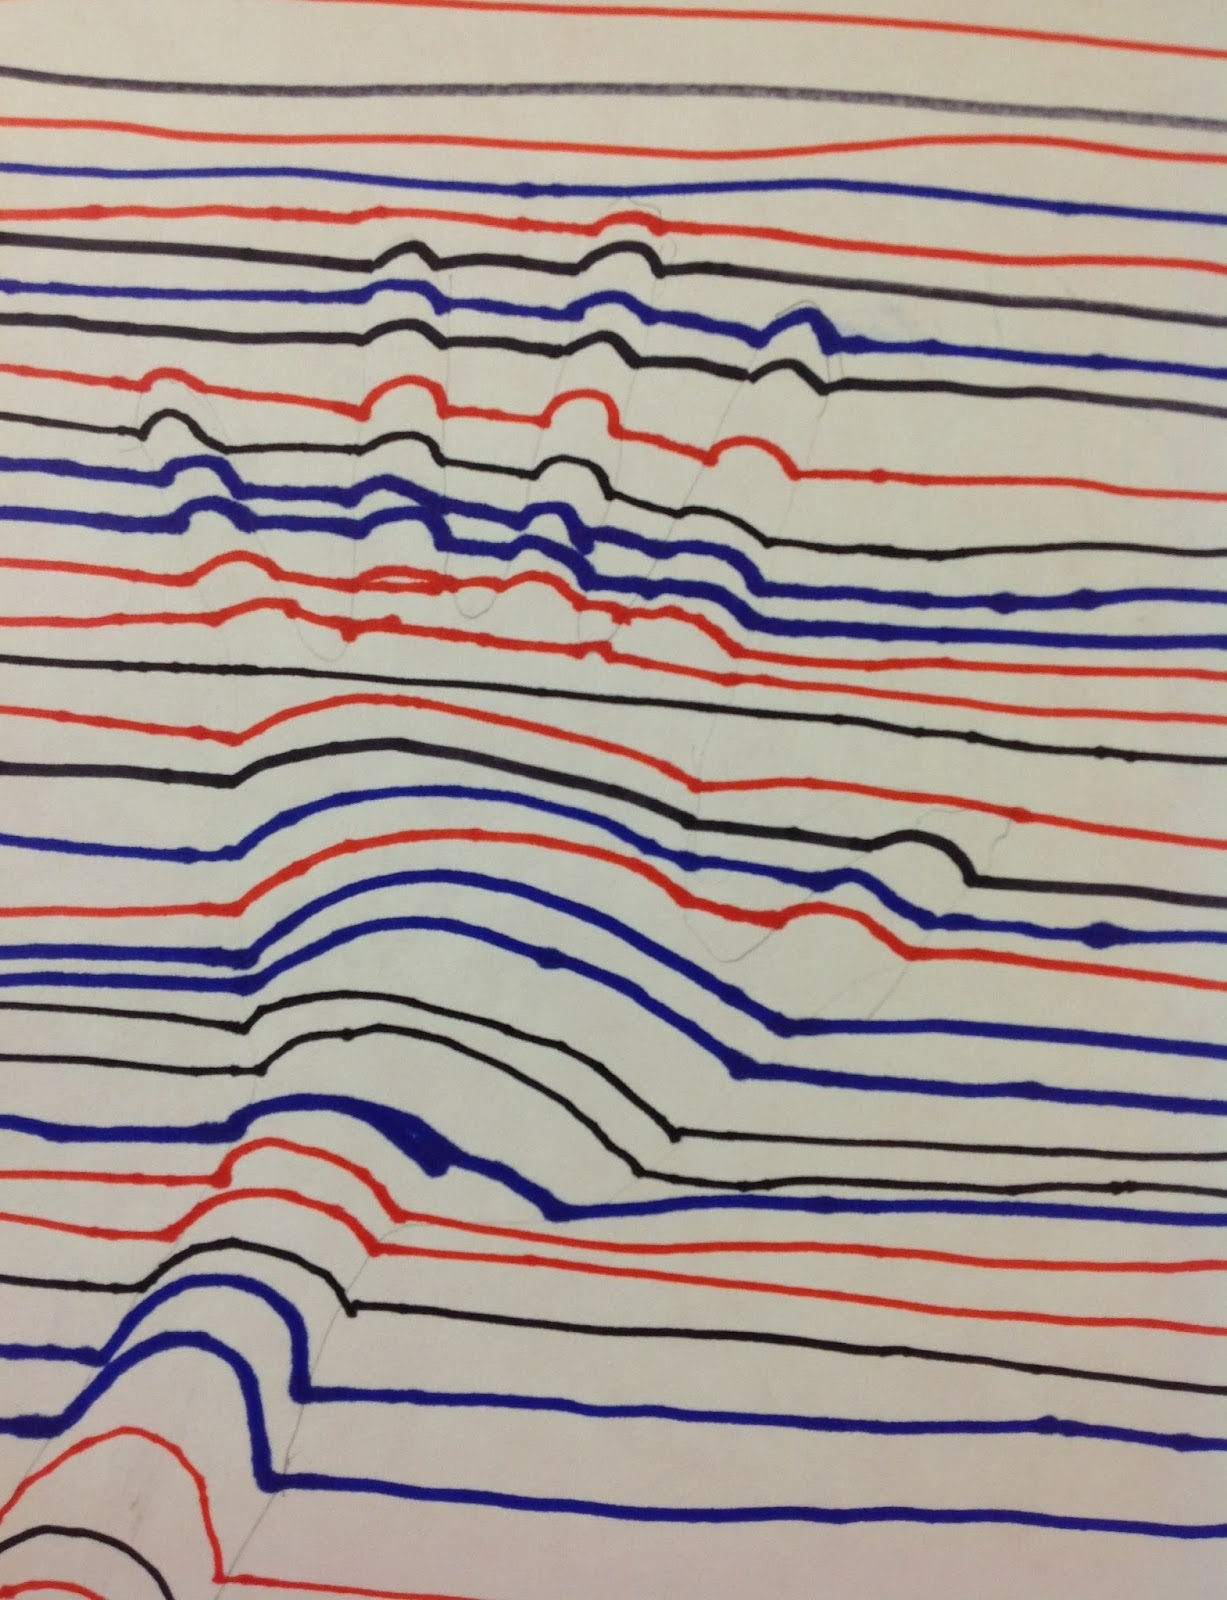 Op art uses color to create - To Create These Op Art Hands Students Utilized The Element Line Beginning At The Edge Of Their Paper With A Straight Line And Then Bumping Up When The